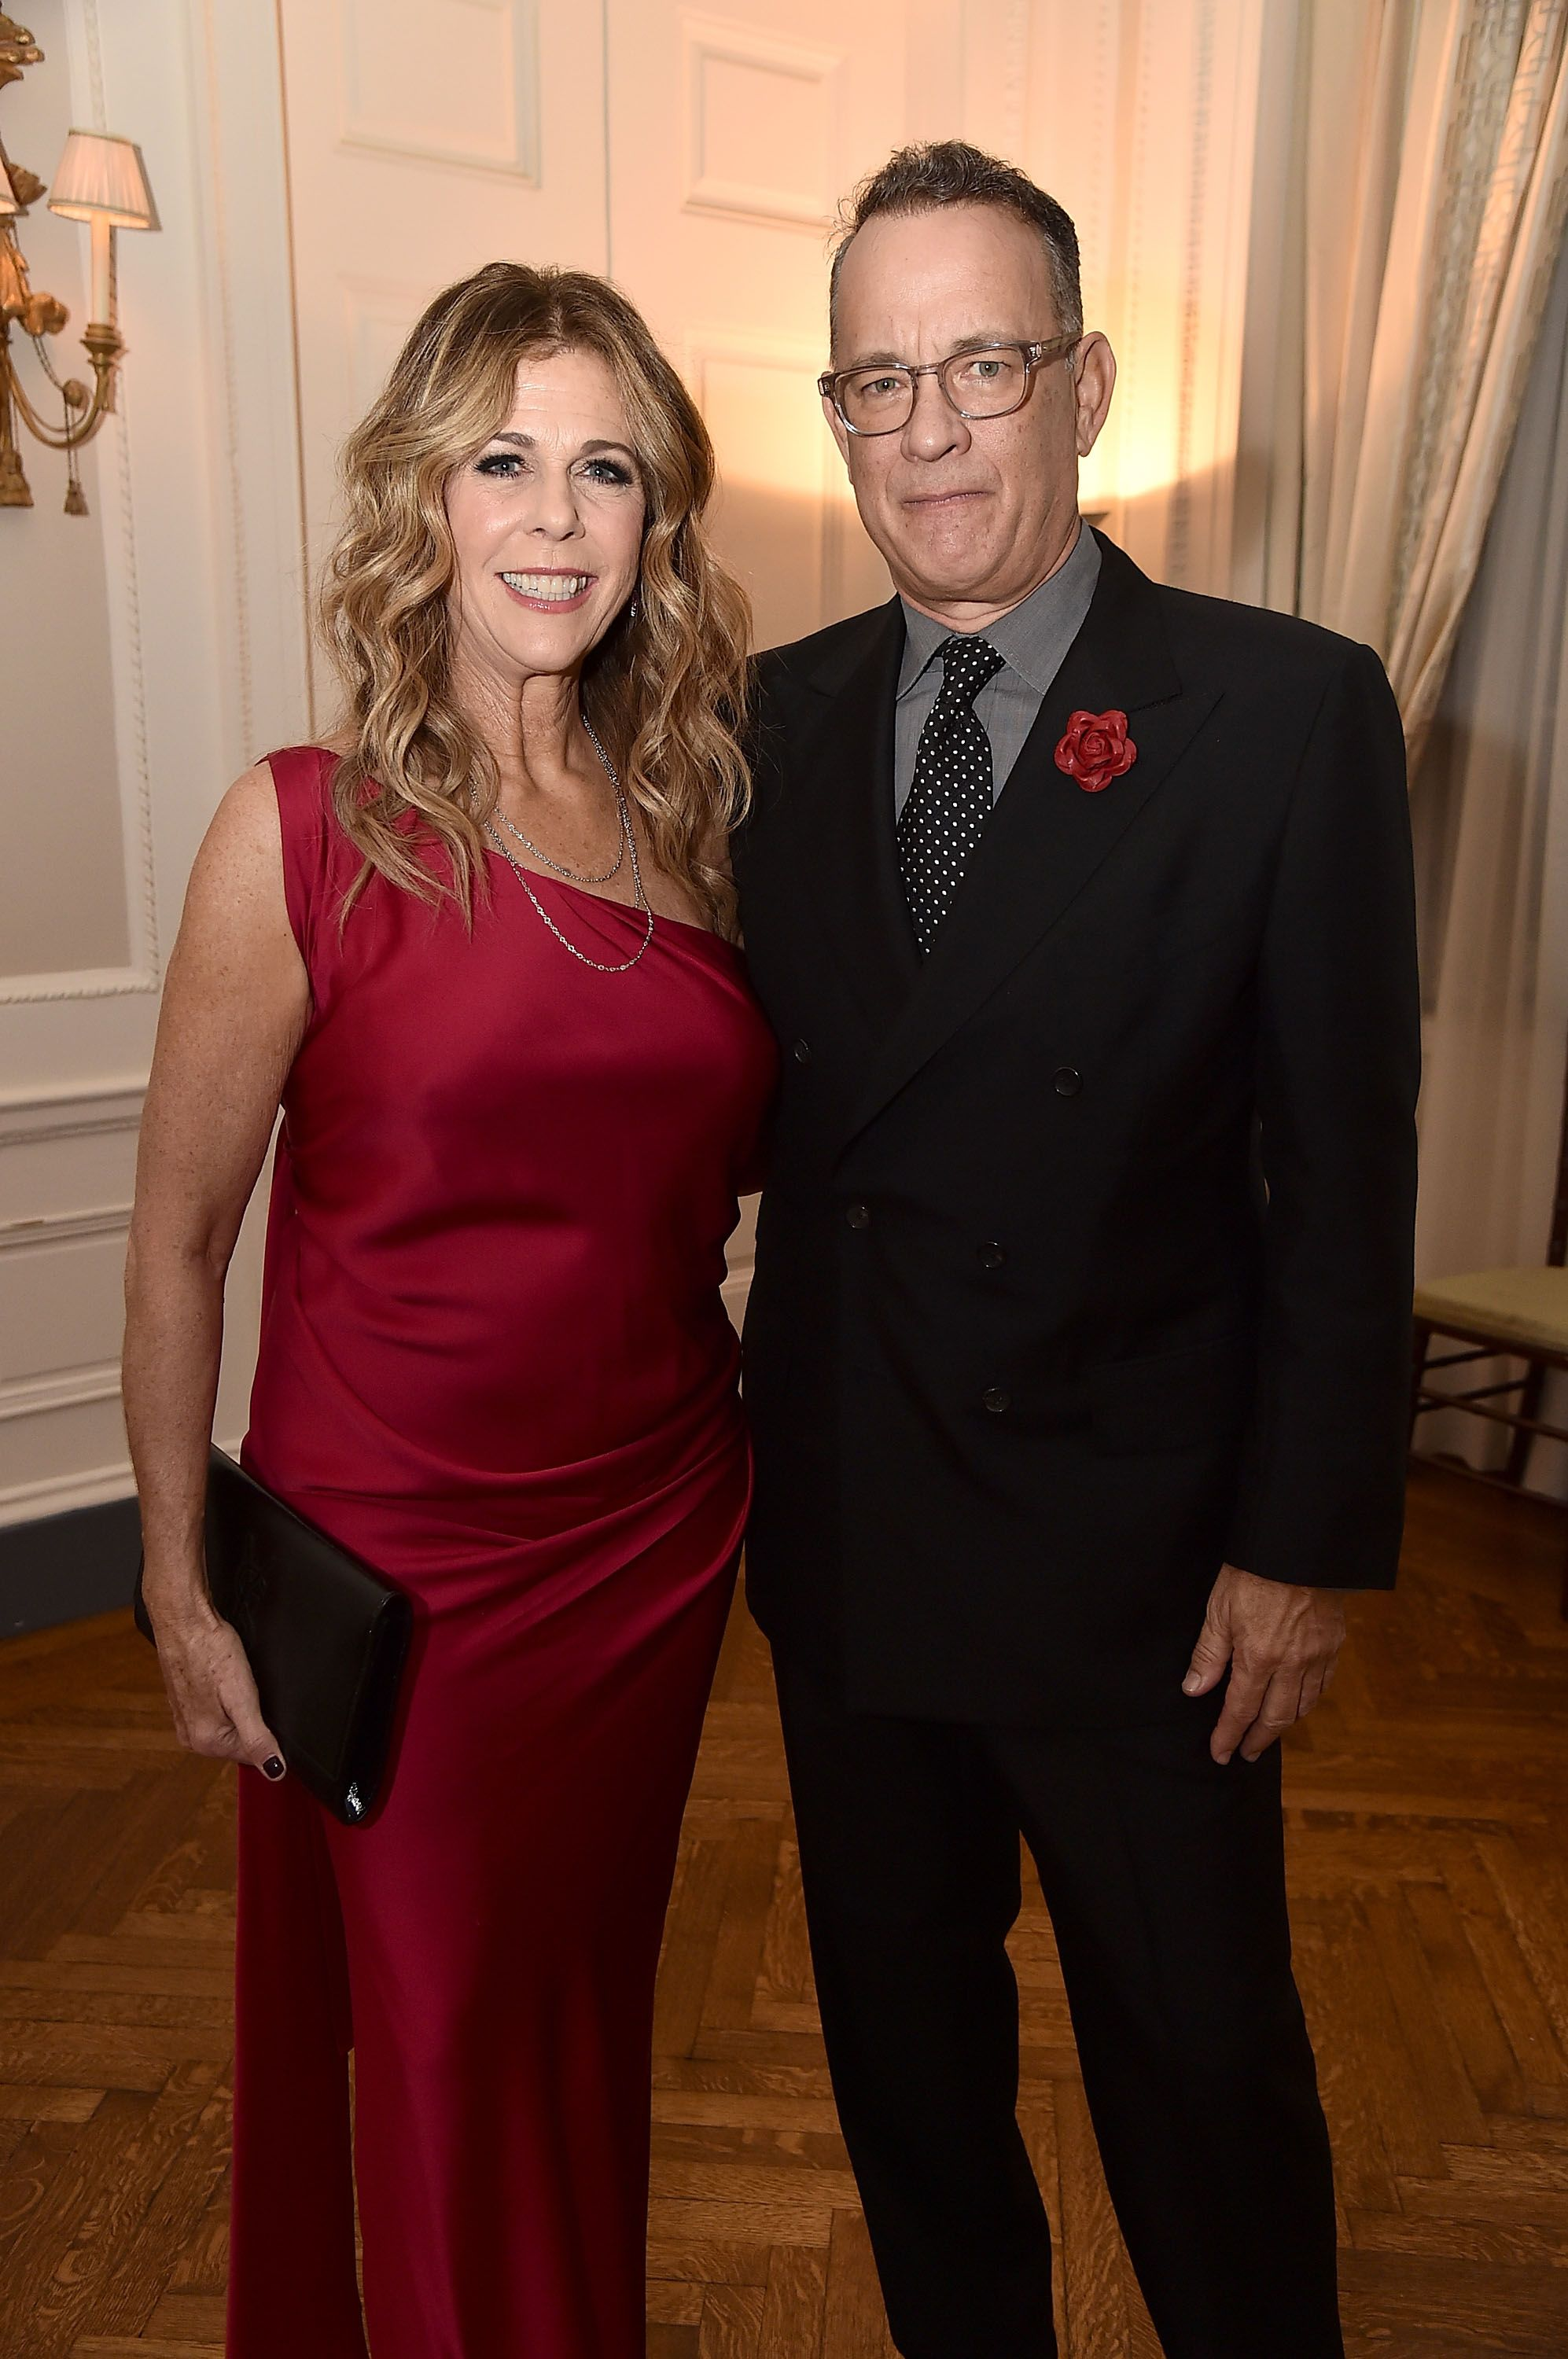 Rita Wilson and Tom Hanks at the American Friends of Blerancourt Dinner at Colony Club on November 9, 2018 | Photo: Getty Images